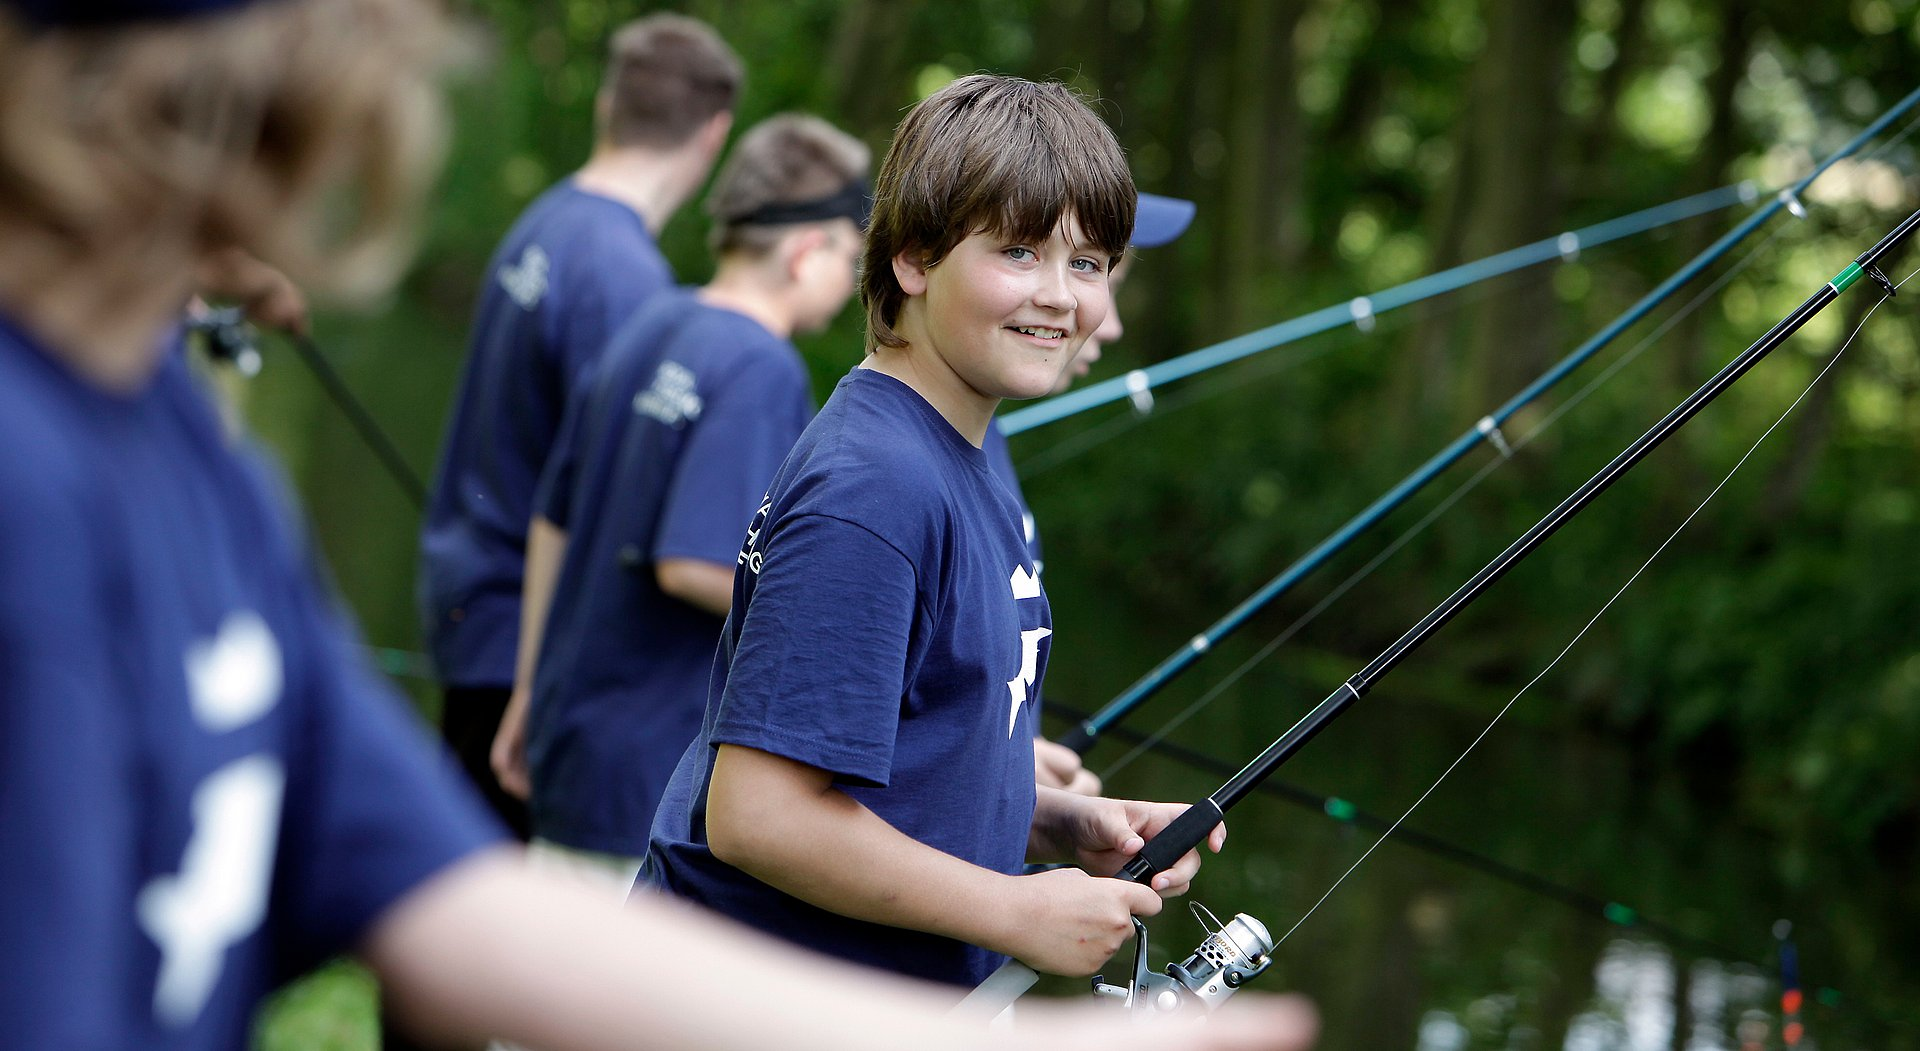 Kinder mit T-Shirts im Royal Fishing Corporate Design angeln gemeinsam am See